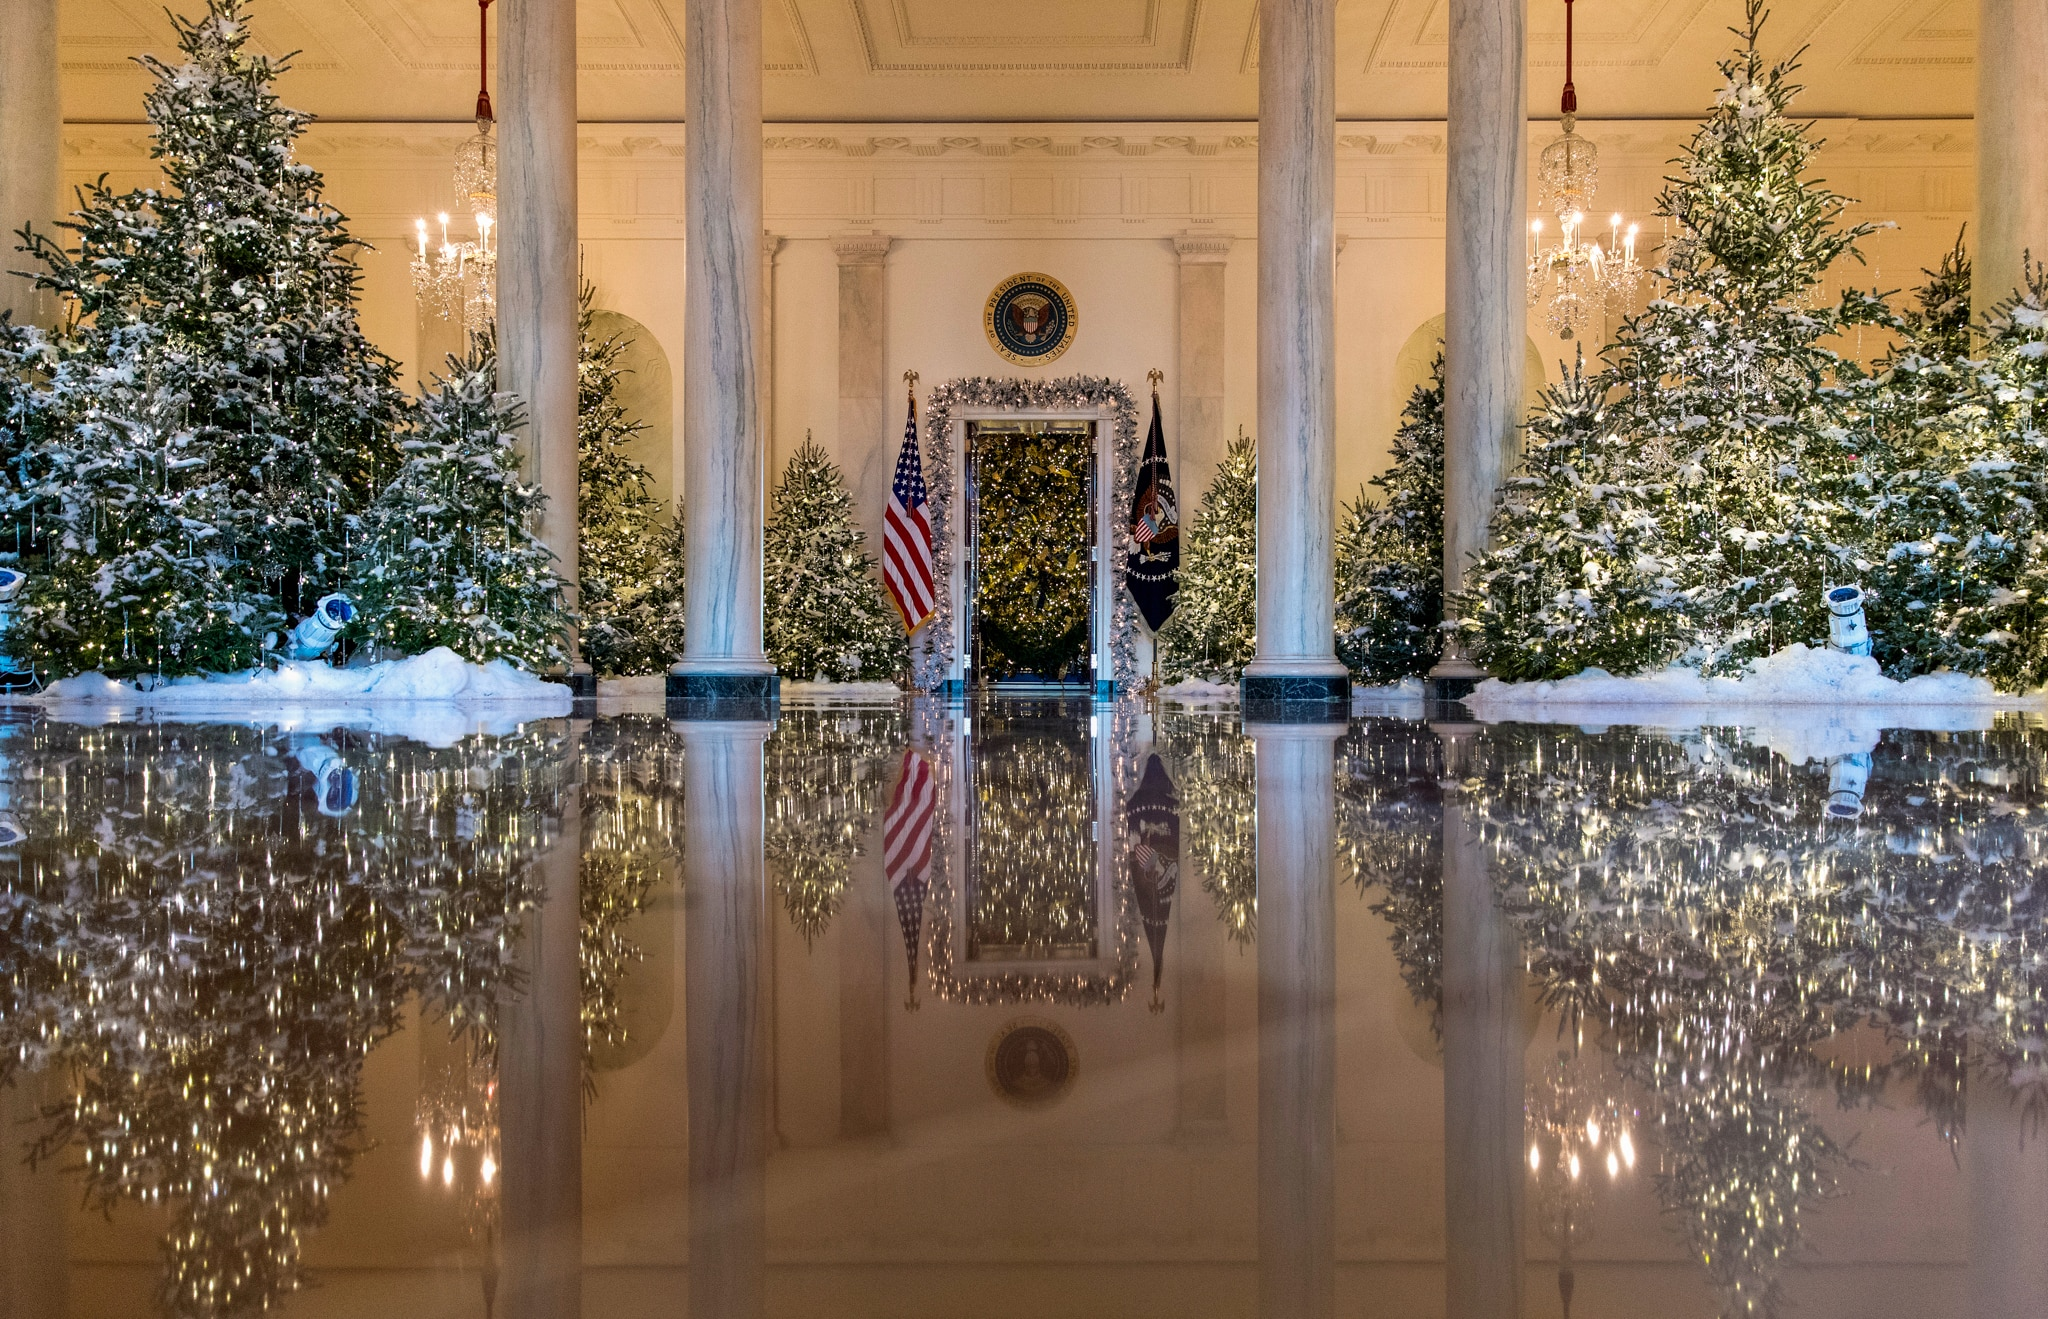 Grand Foyer decorated with Christmas trees and artificial snow (© AP Images)